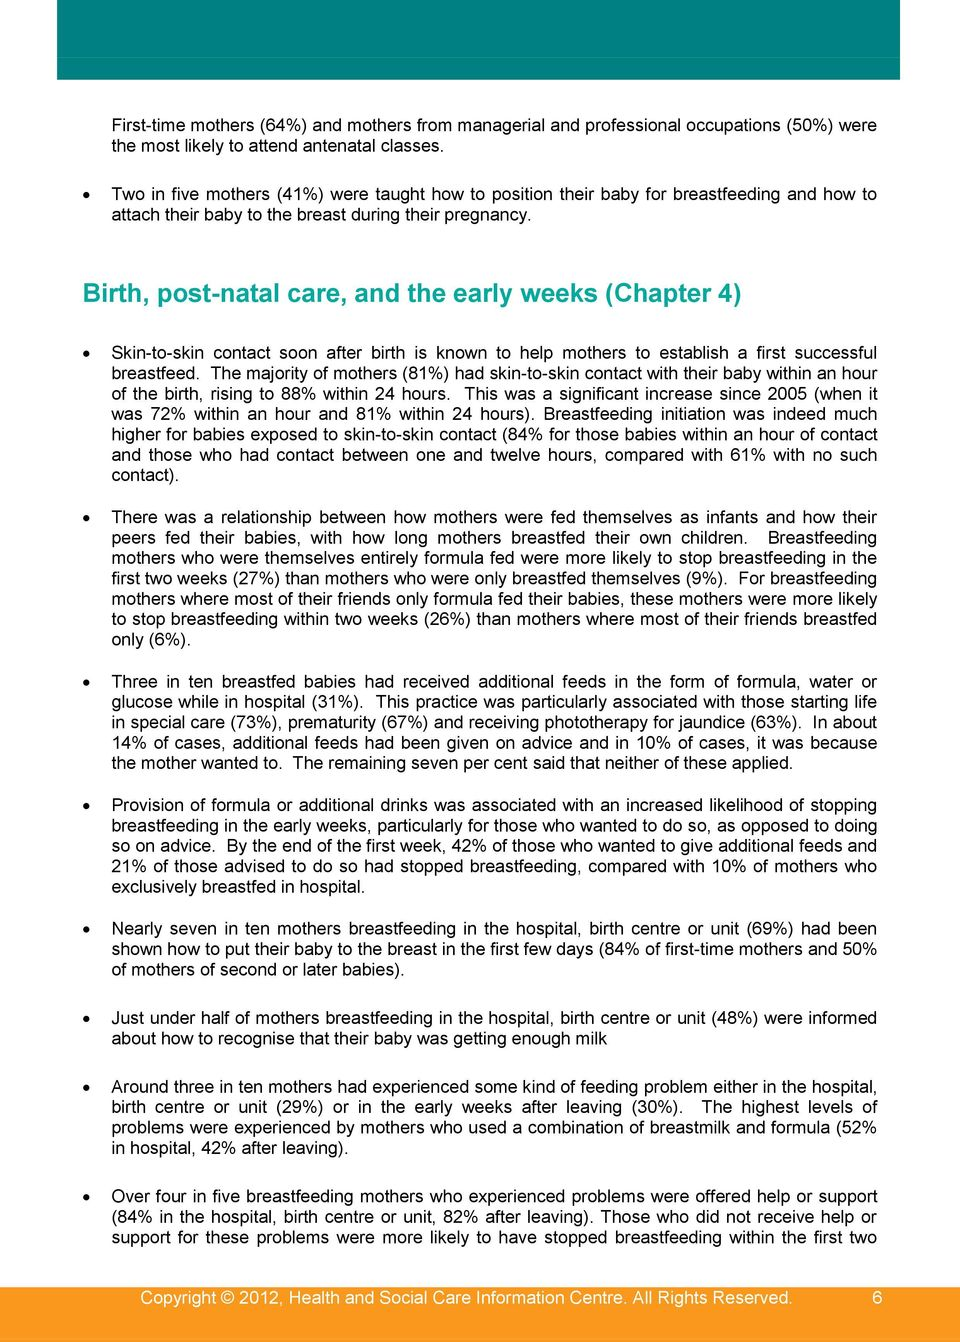 Birth, post-natal care, and the early weeks (Chapter 4) Skin-to-skin contact soon after birth is known to help mothers to establish a first successful breastfeed.